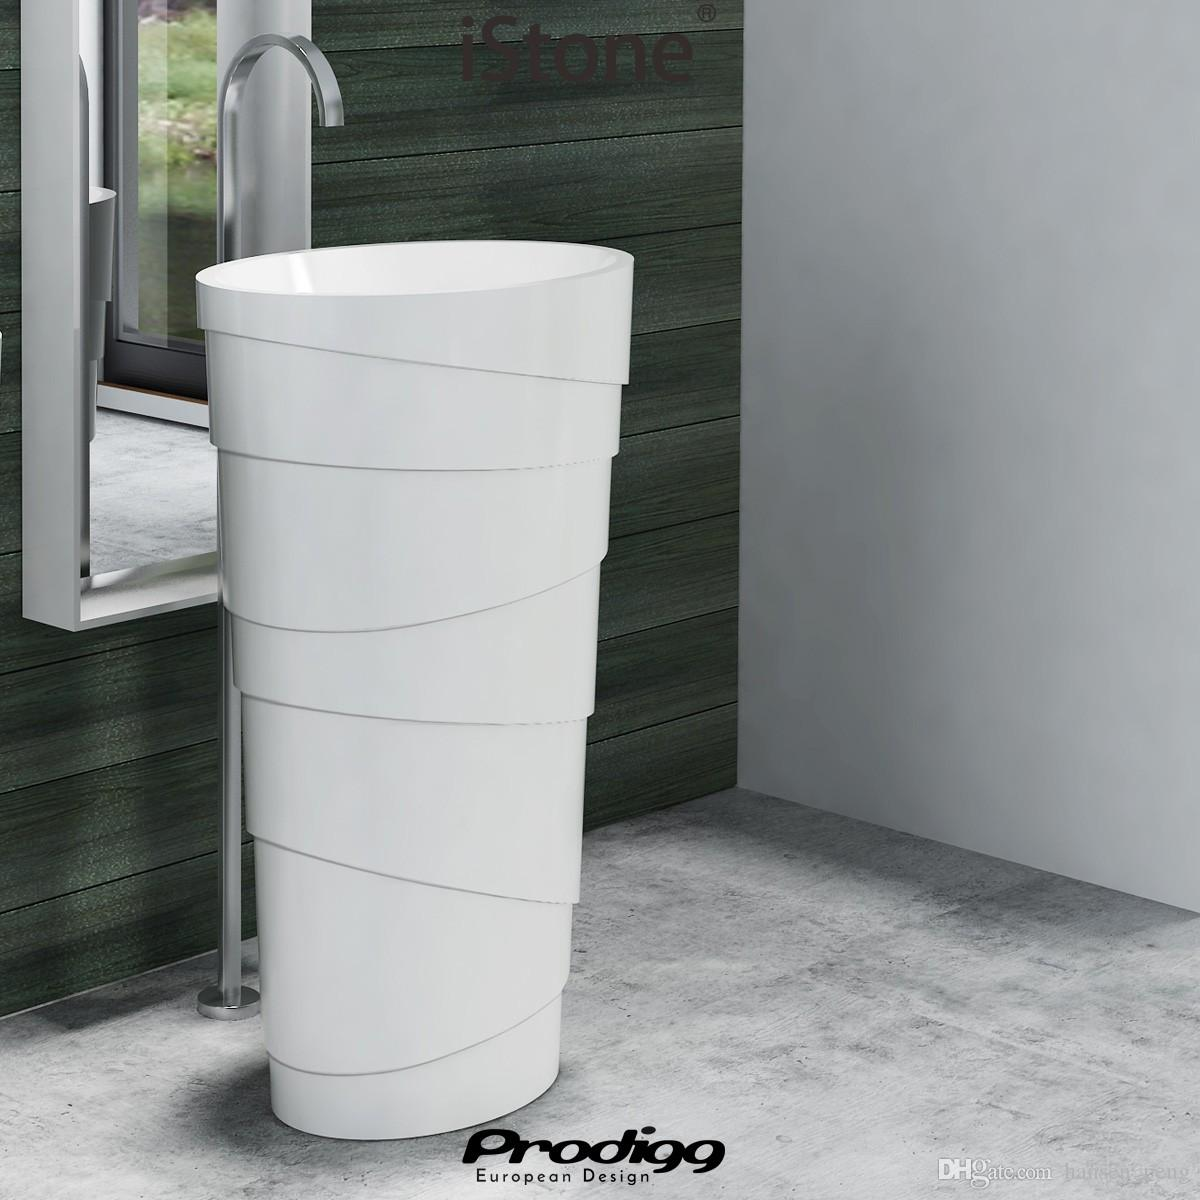 600x400x900mm CUPC Certificate Freestanding Solid Surface Stone Bathroom Wash Basin Cloakroom Oval Pedestal Vessel Sink RS38192